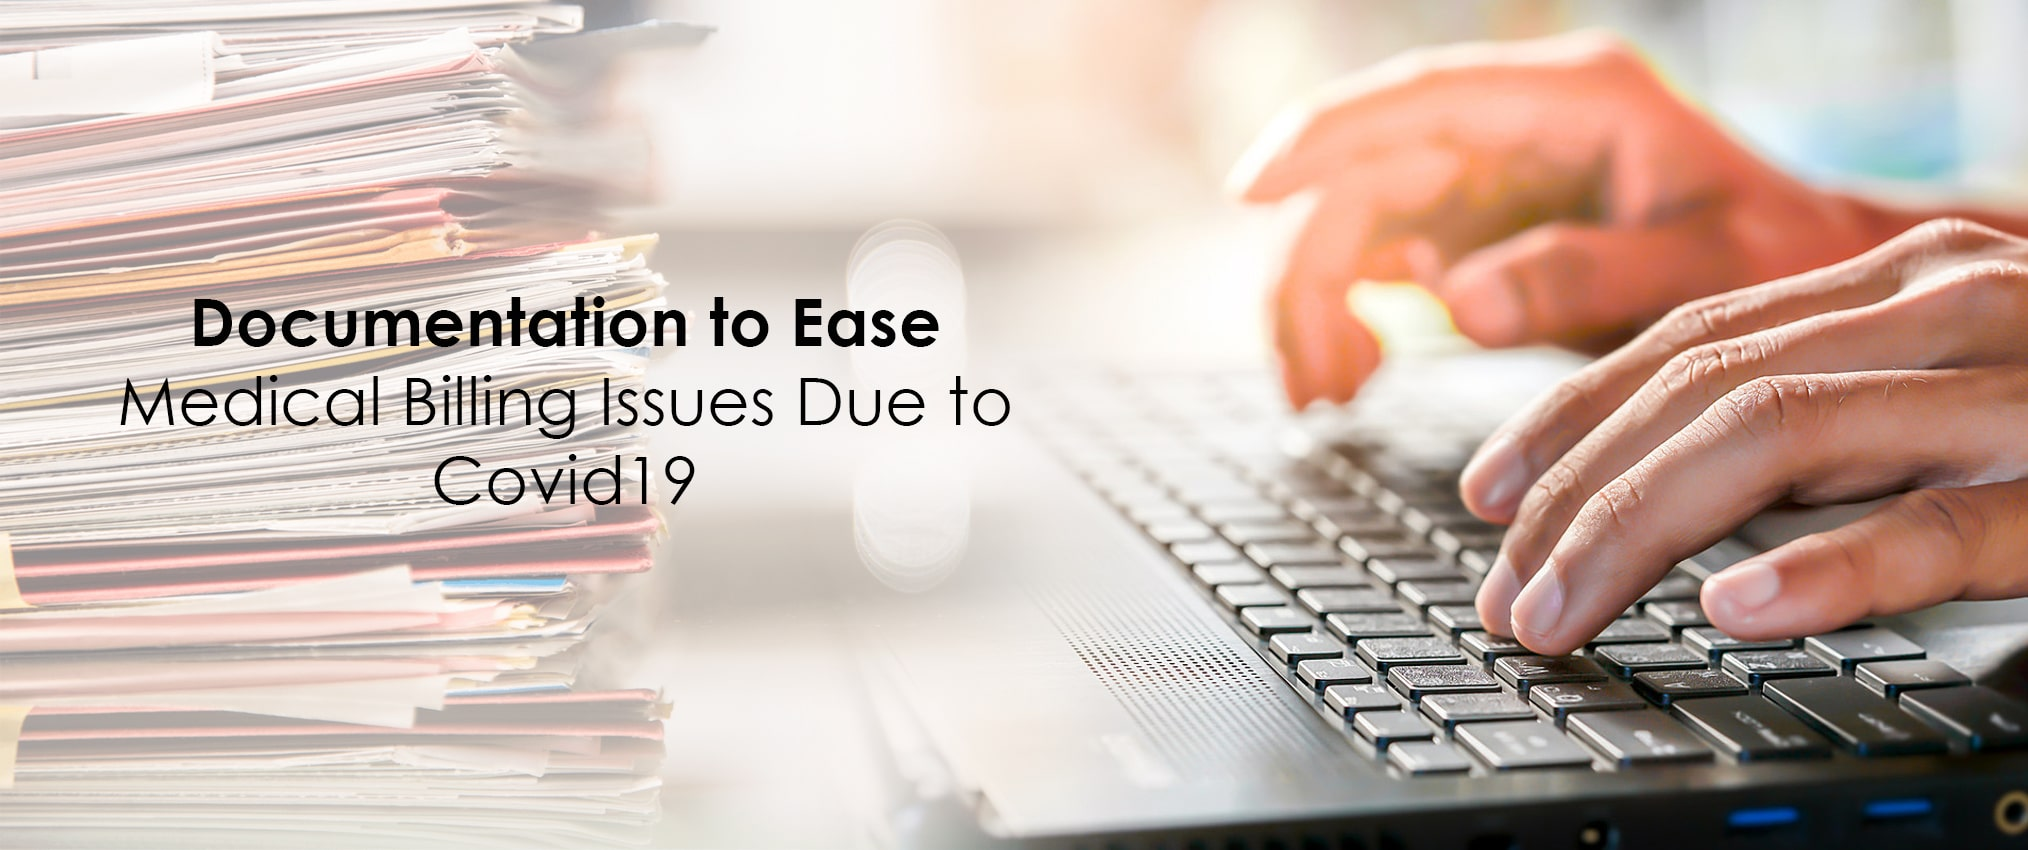 Documentation to Ease Medical Billing Issues Due to Covid19